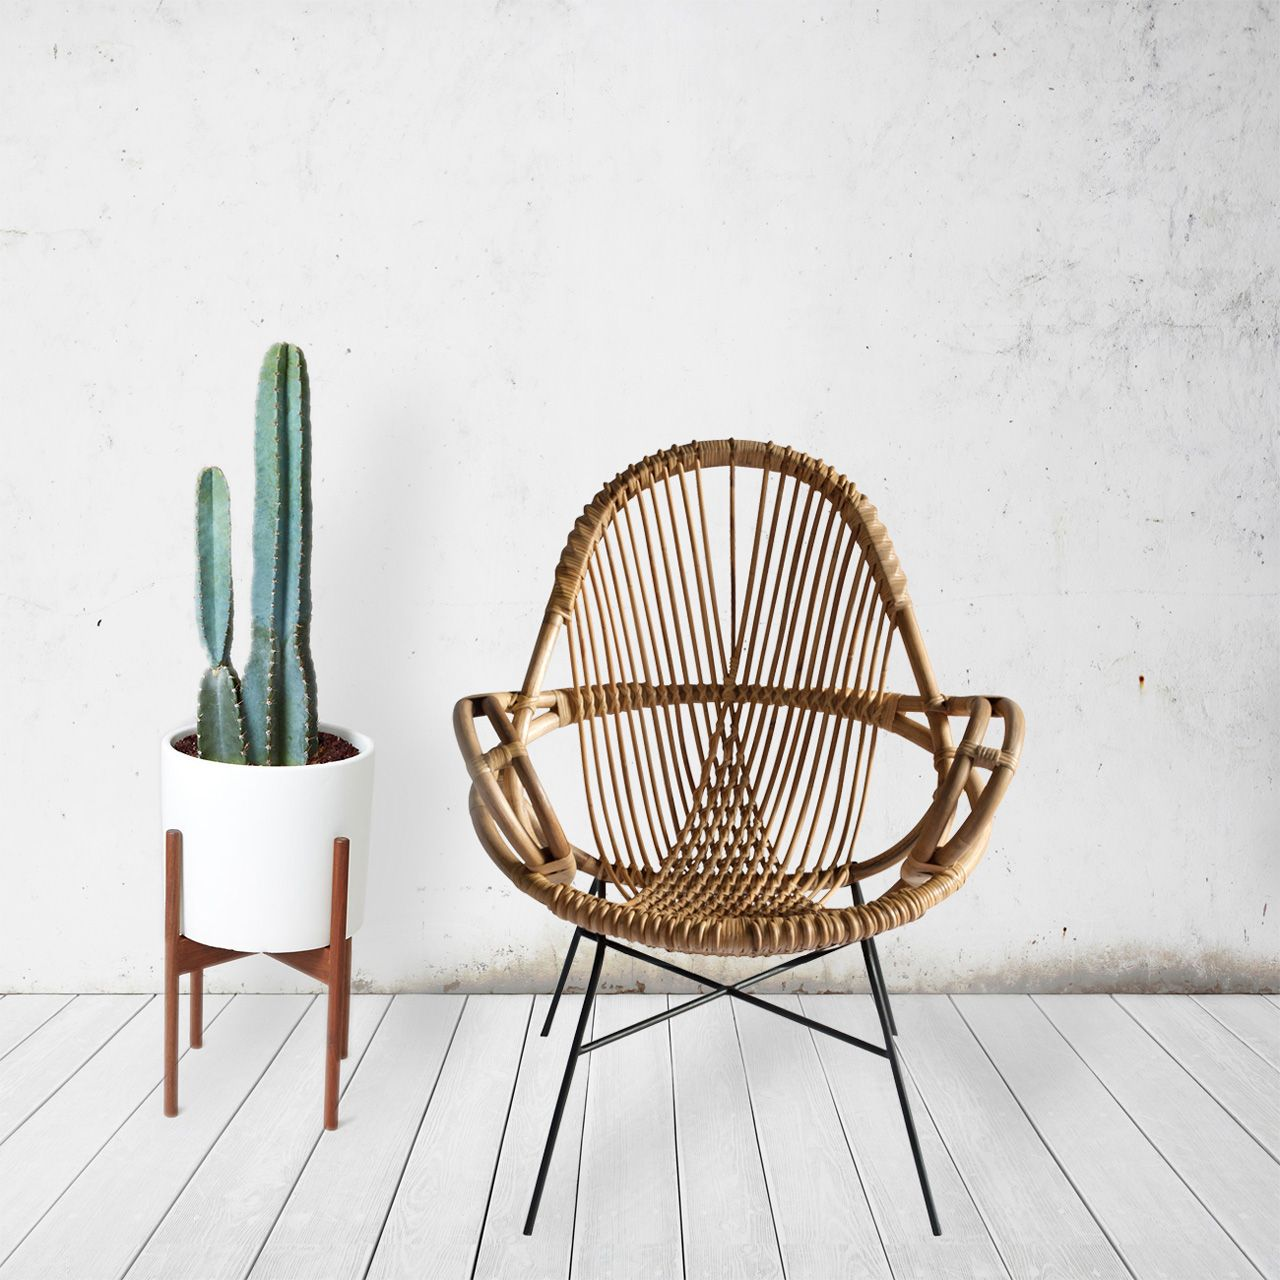 Diamond Rattan Chair for WEND Studio   designed by Plante and Genevieve  BandrowskiWEND Studio 1 Diamond Rattan Chair   Rattan  Studio and Studio design of Modern Wicker Chair